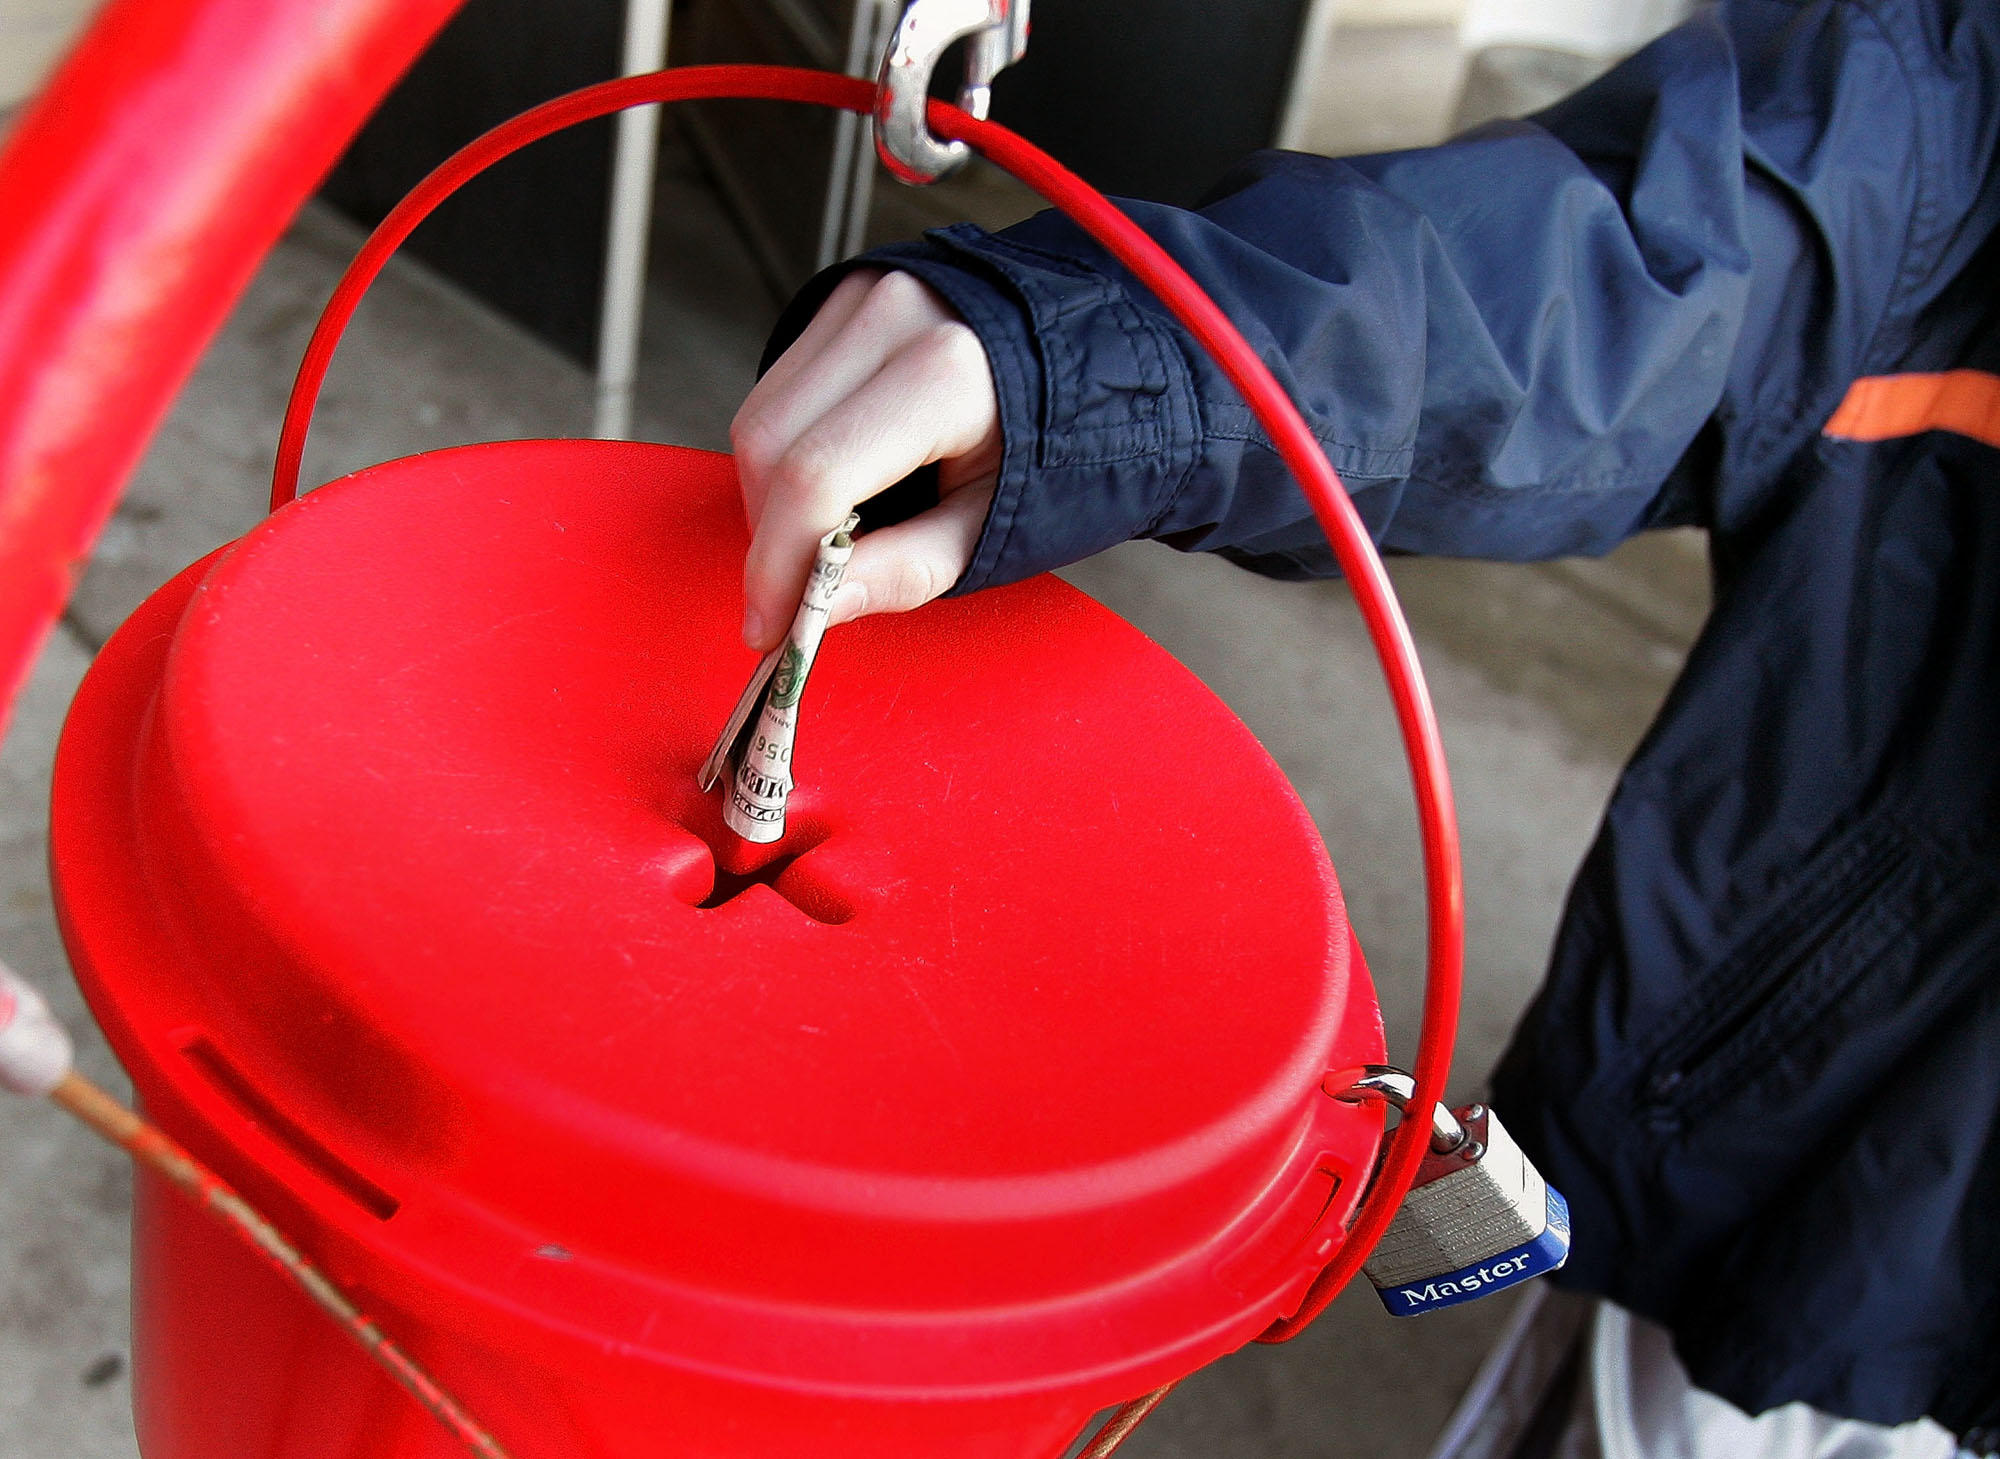 $1.2 donation dropped into Salvation Army kettle in Janesville